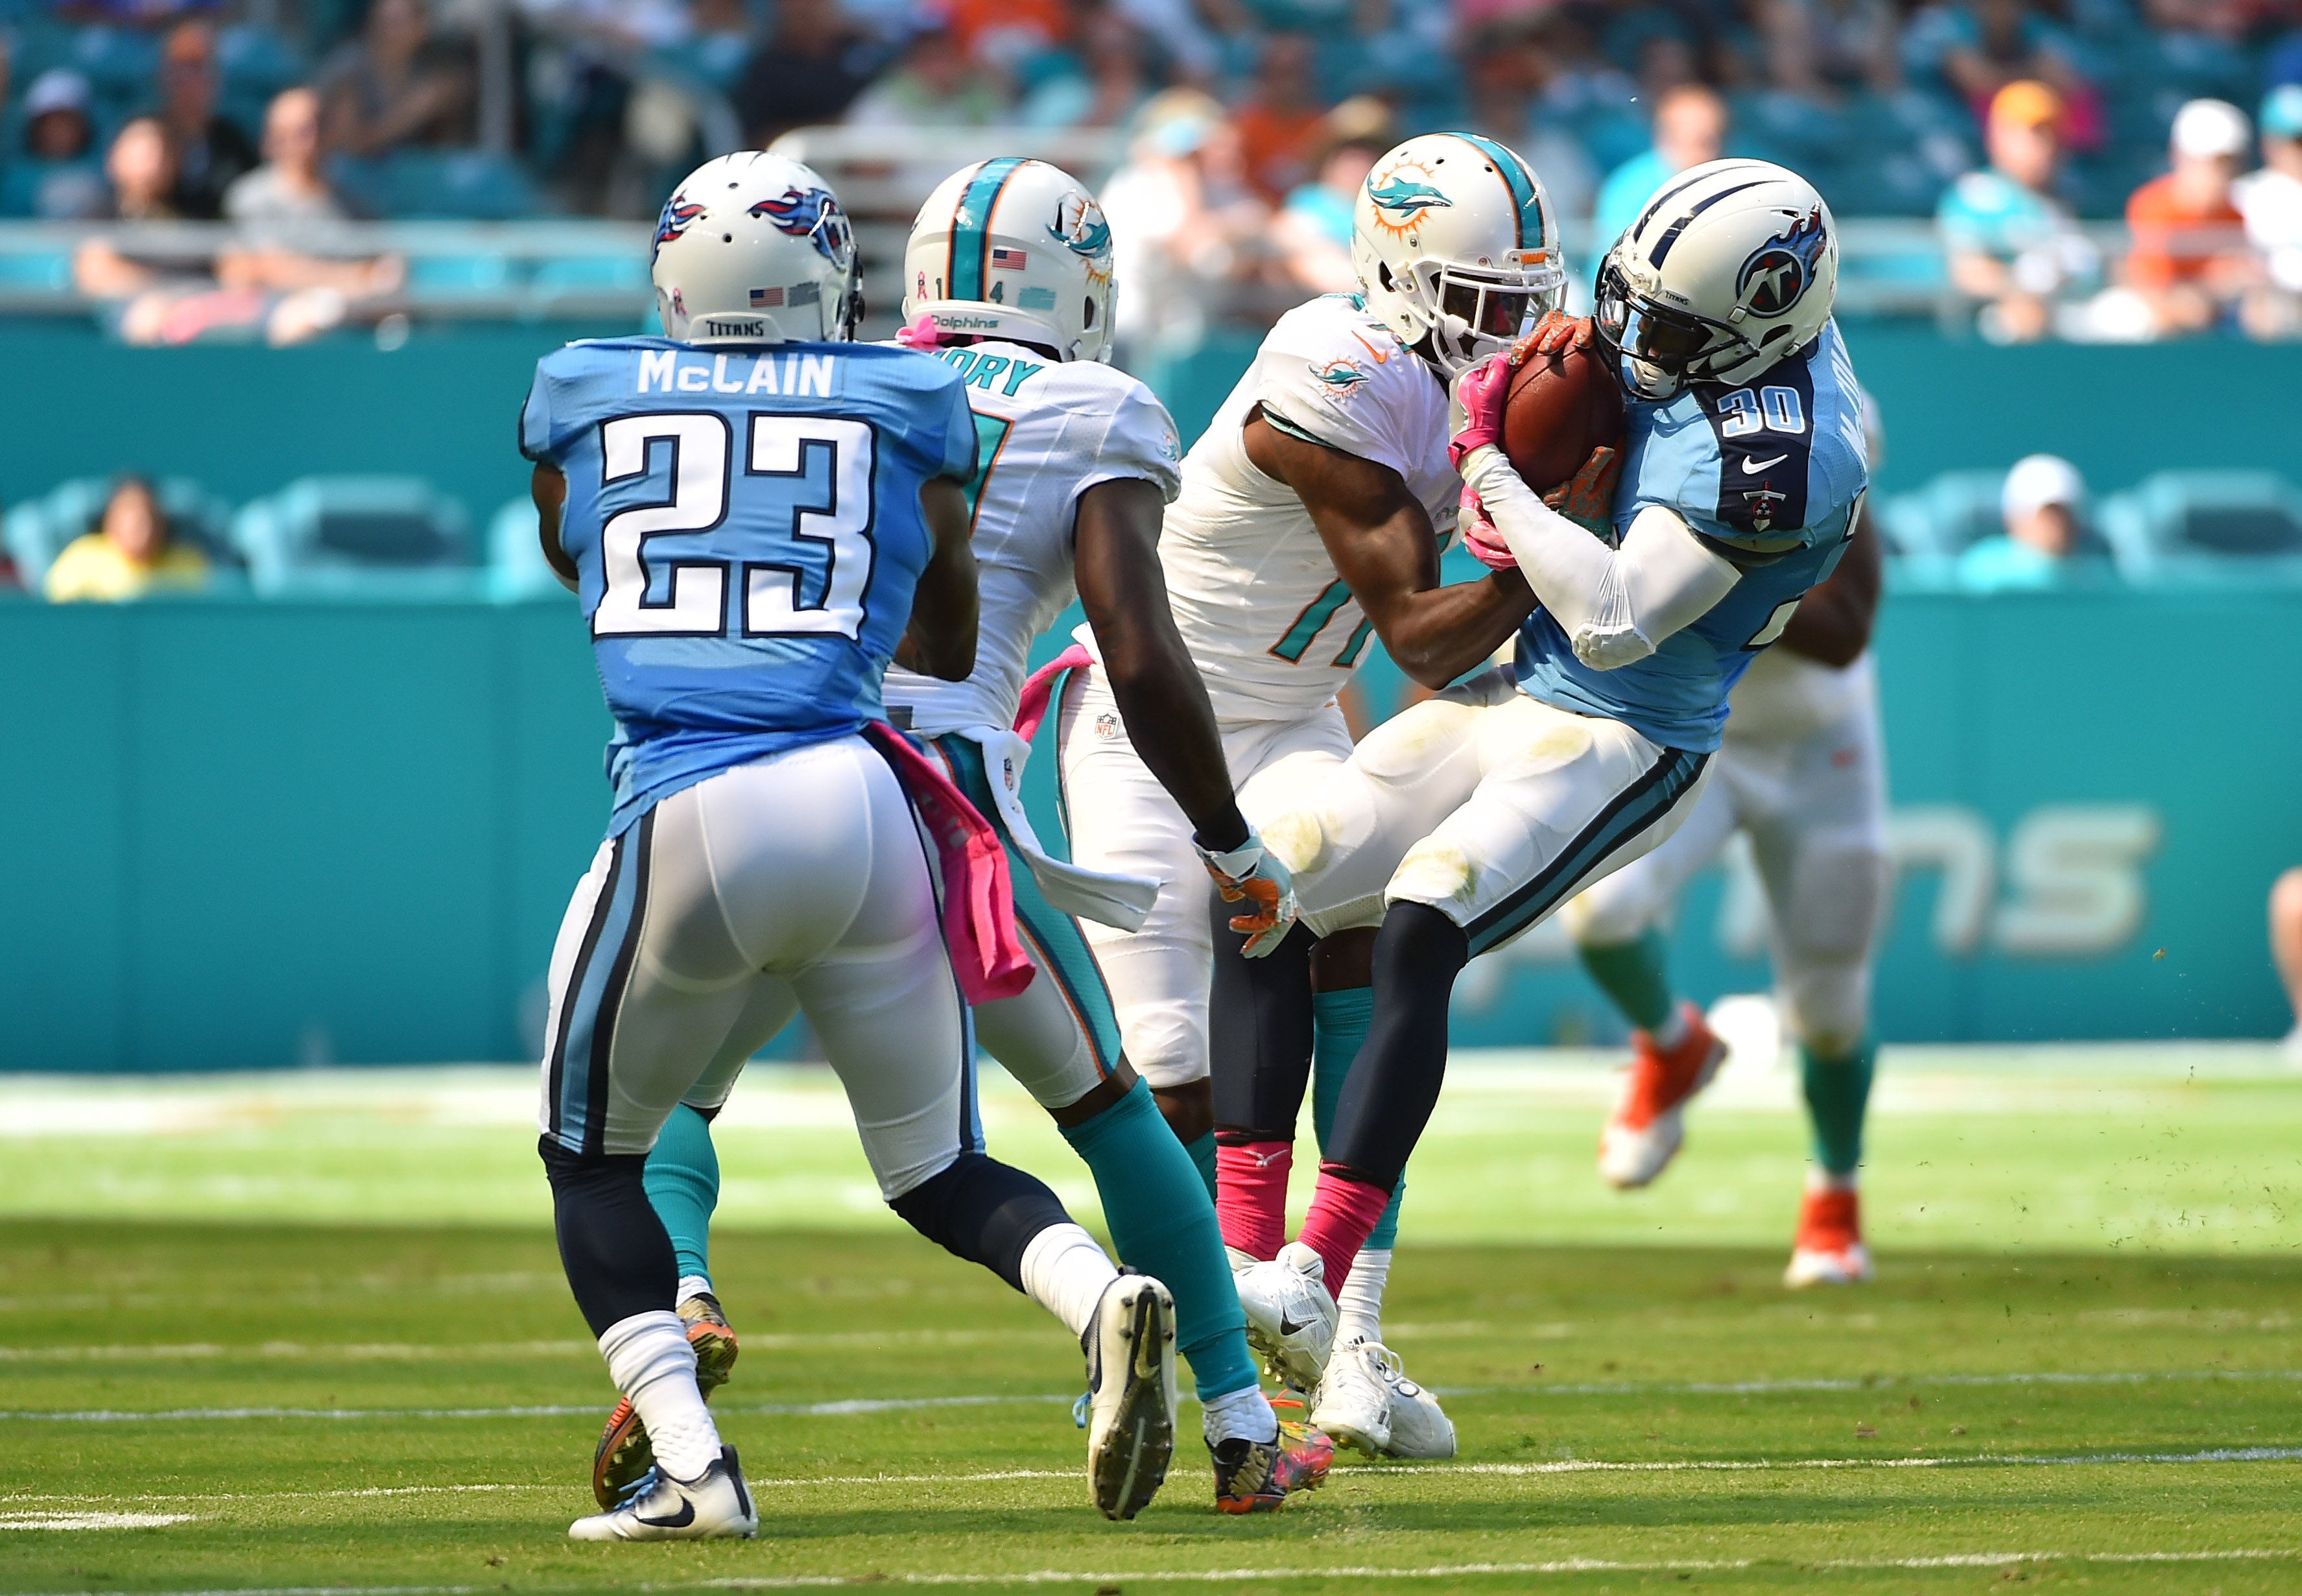 9598352-nfl-tennessee-titans-at-miami-dolphins